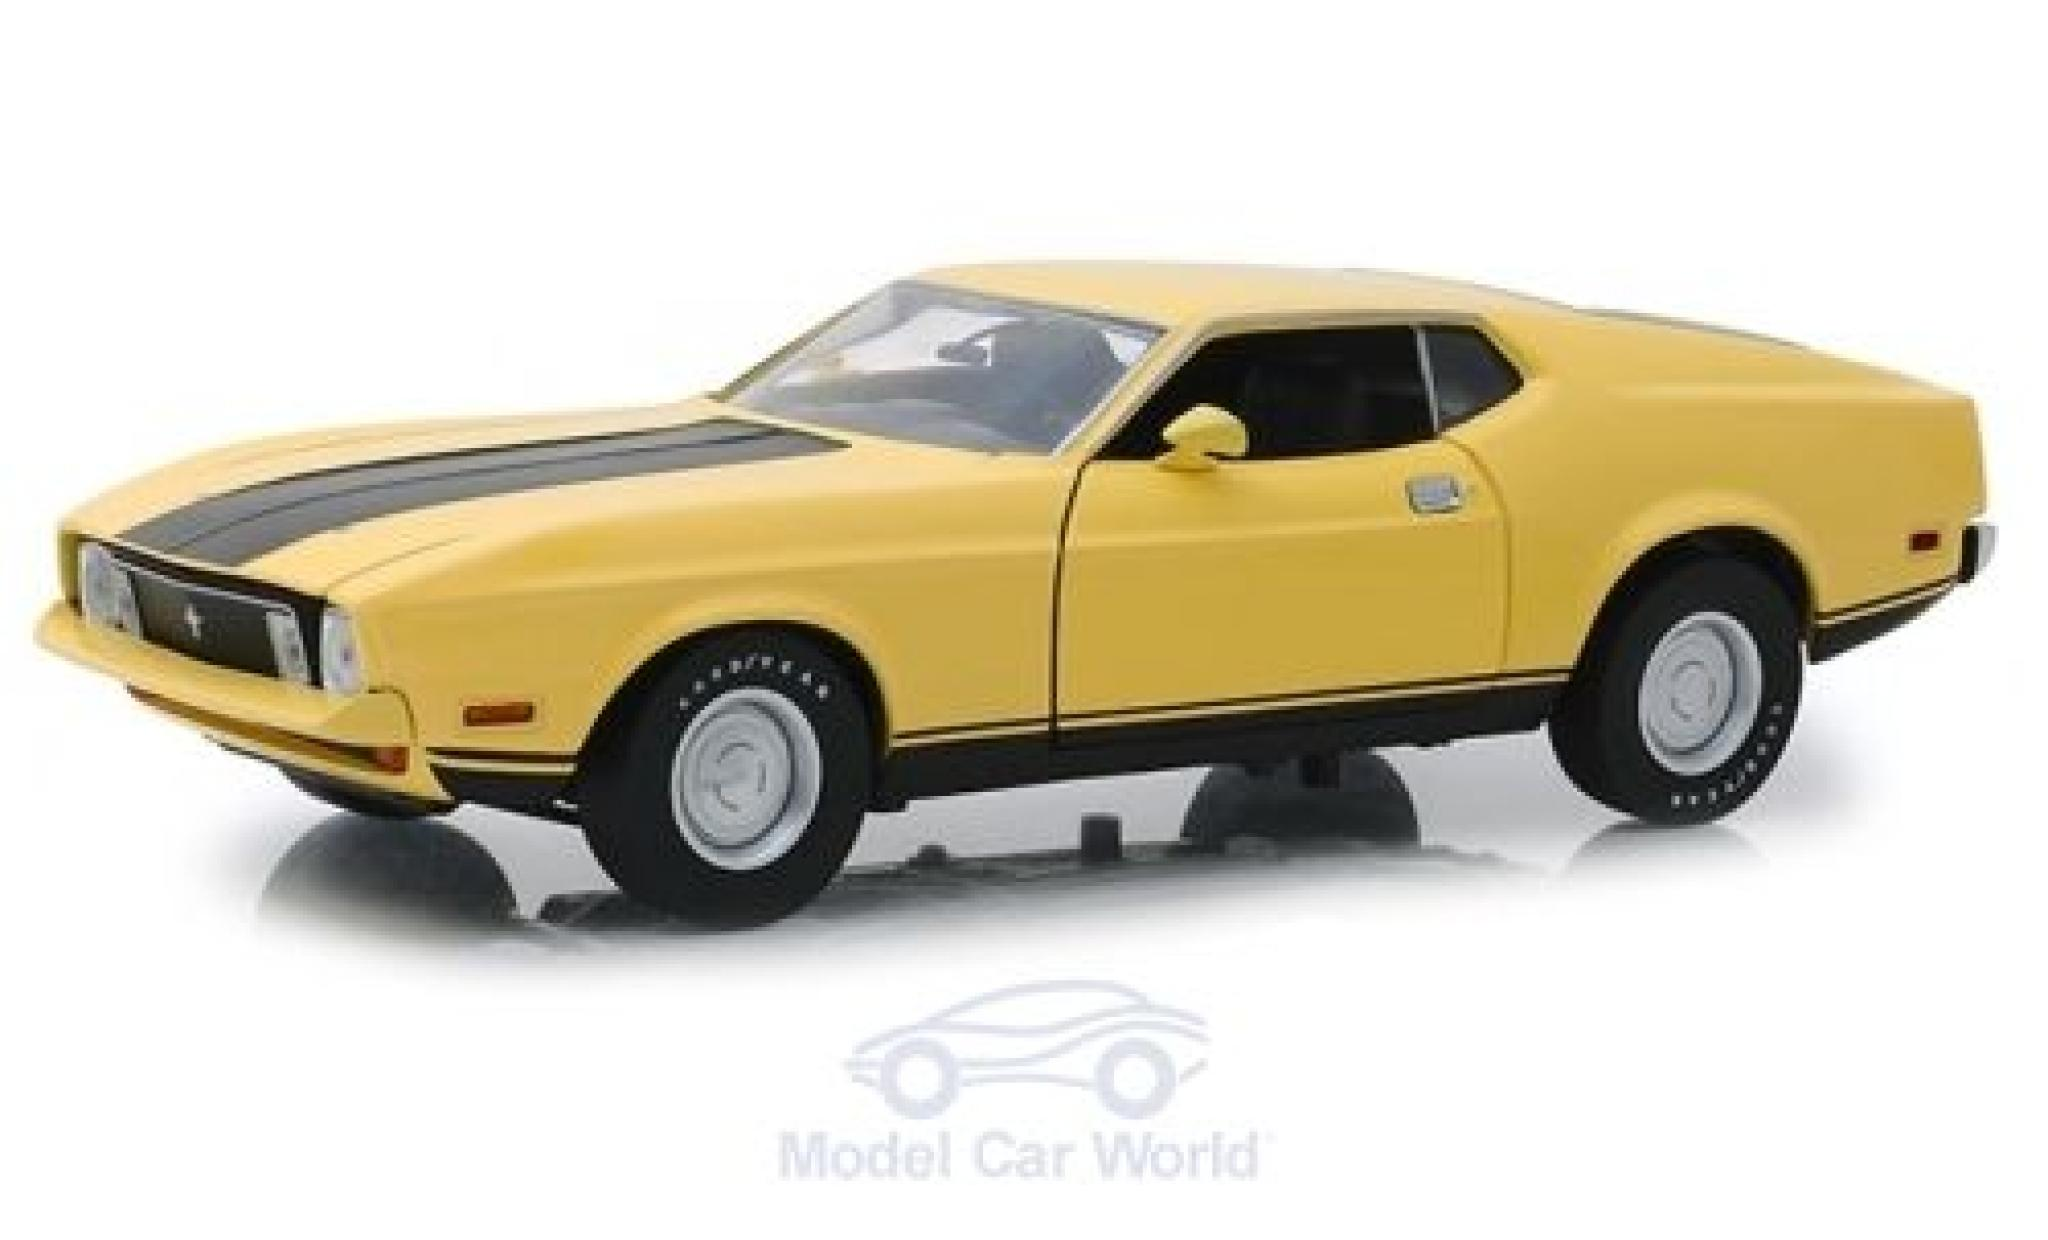 Ford Mustang 1/18 Greenlight Mach1 Eleanor yellow/black Gone in 60 Seconds 1973